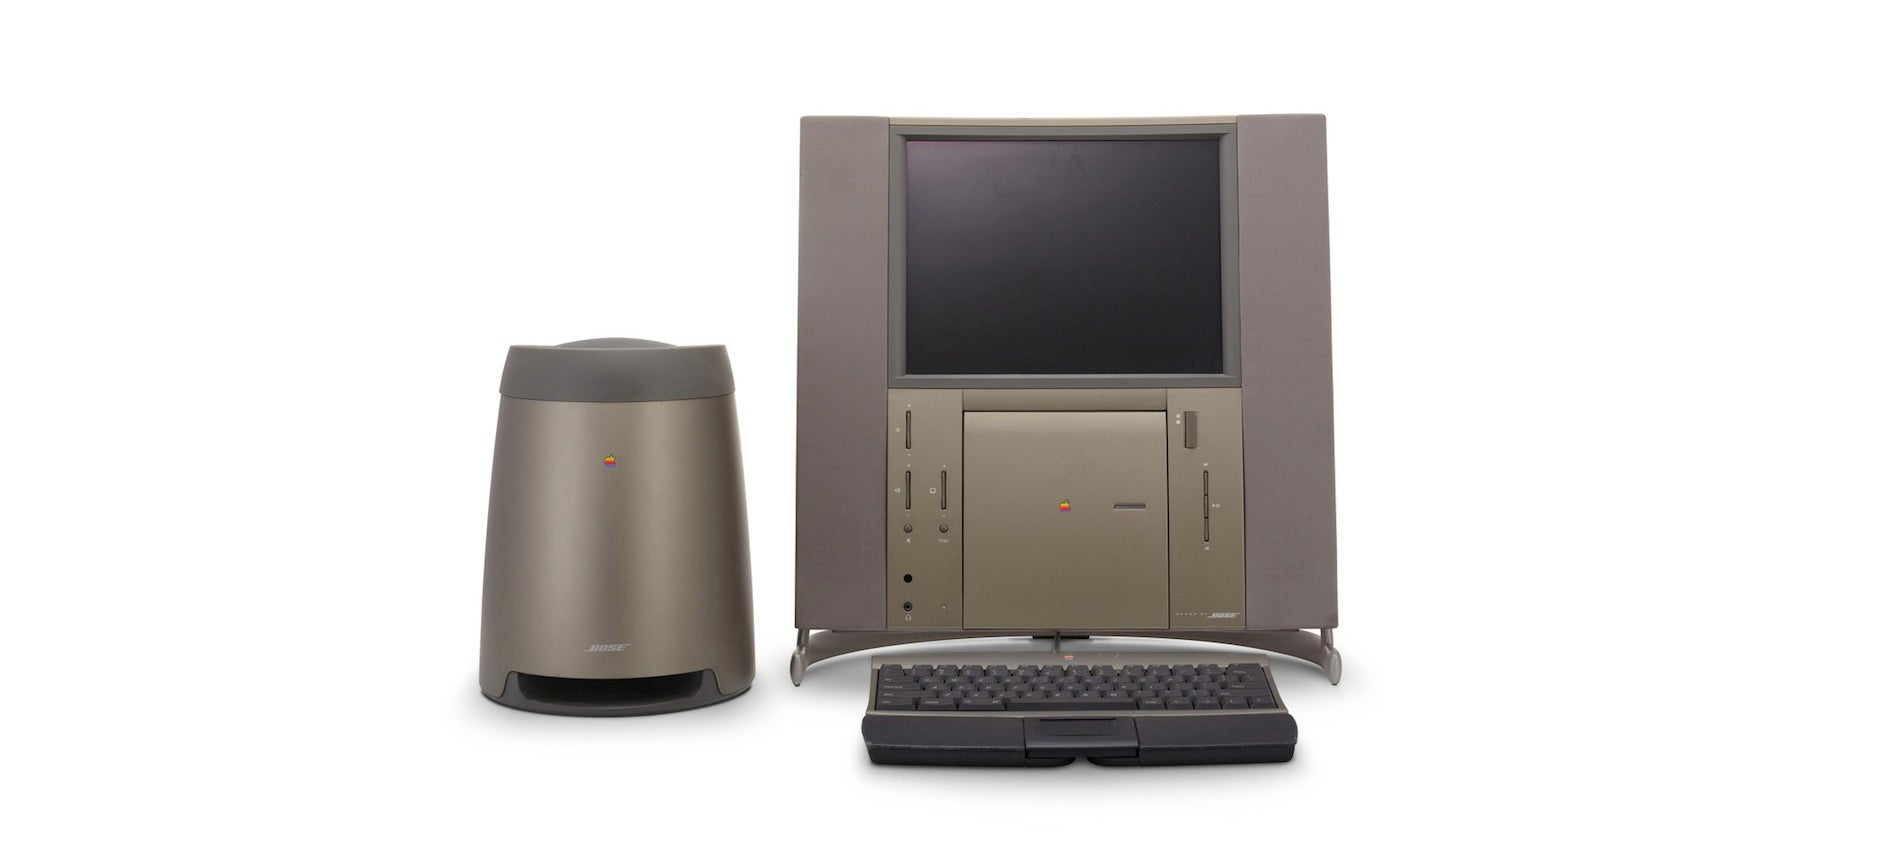 The Last Time Apple Sold An Obscenely Overpriced Gadget